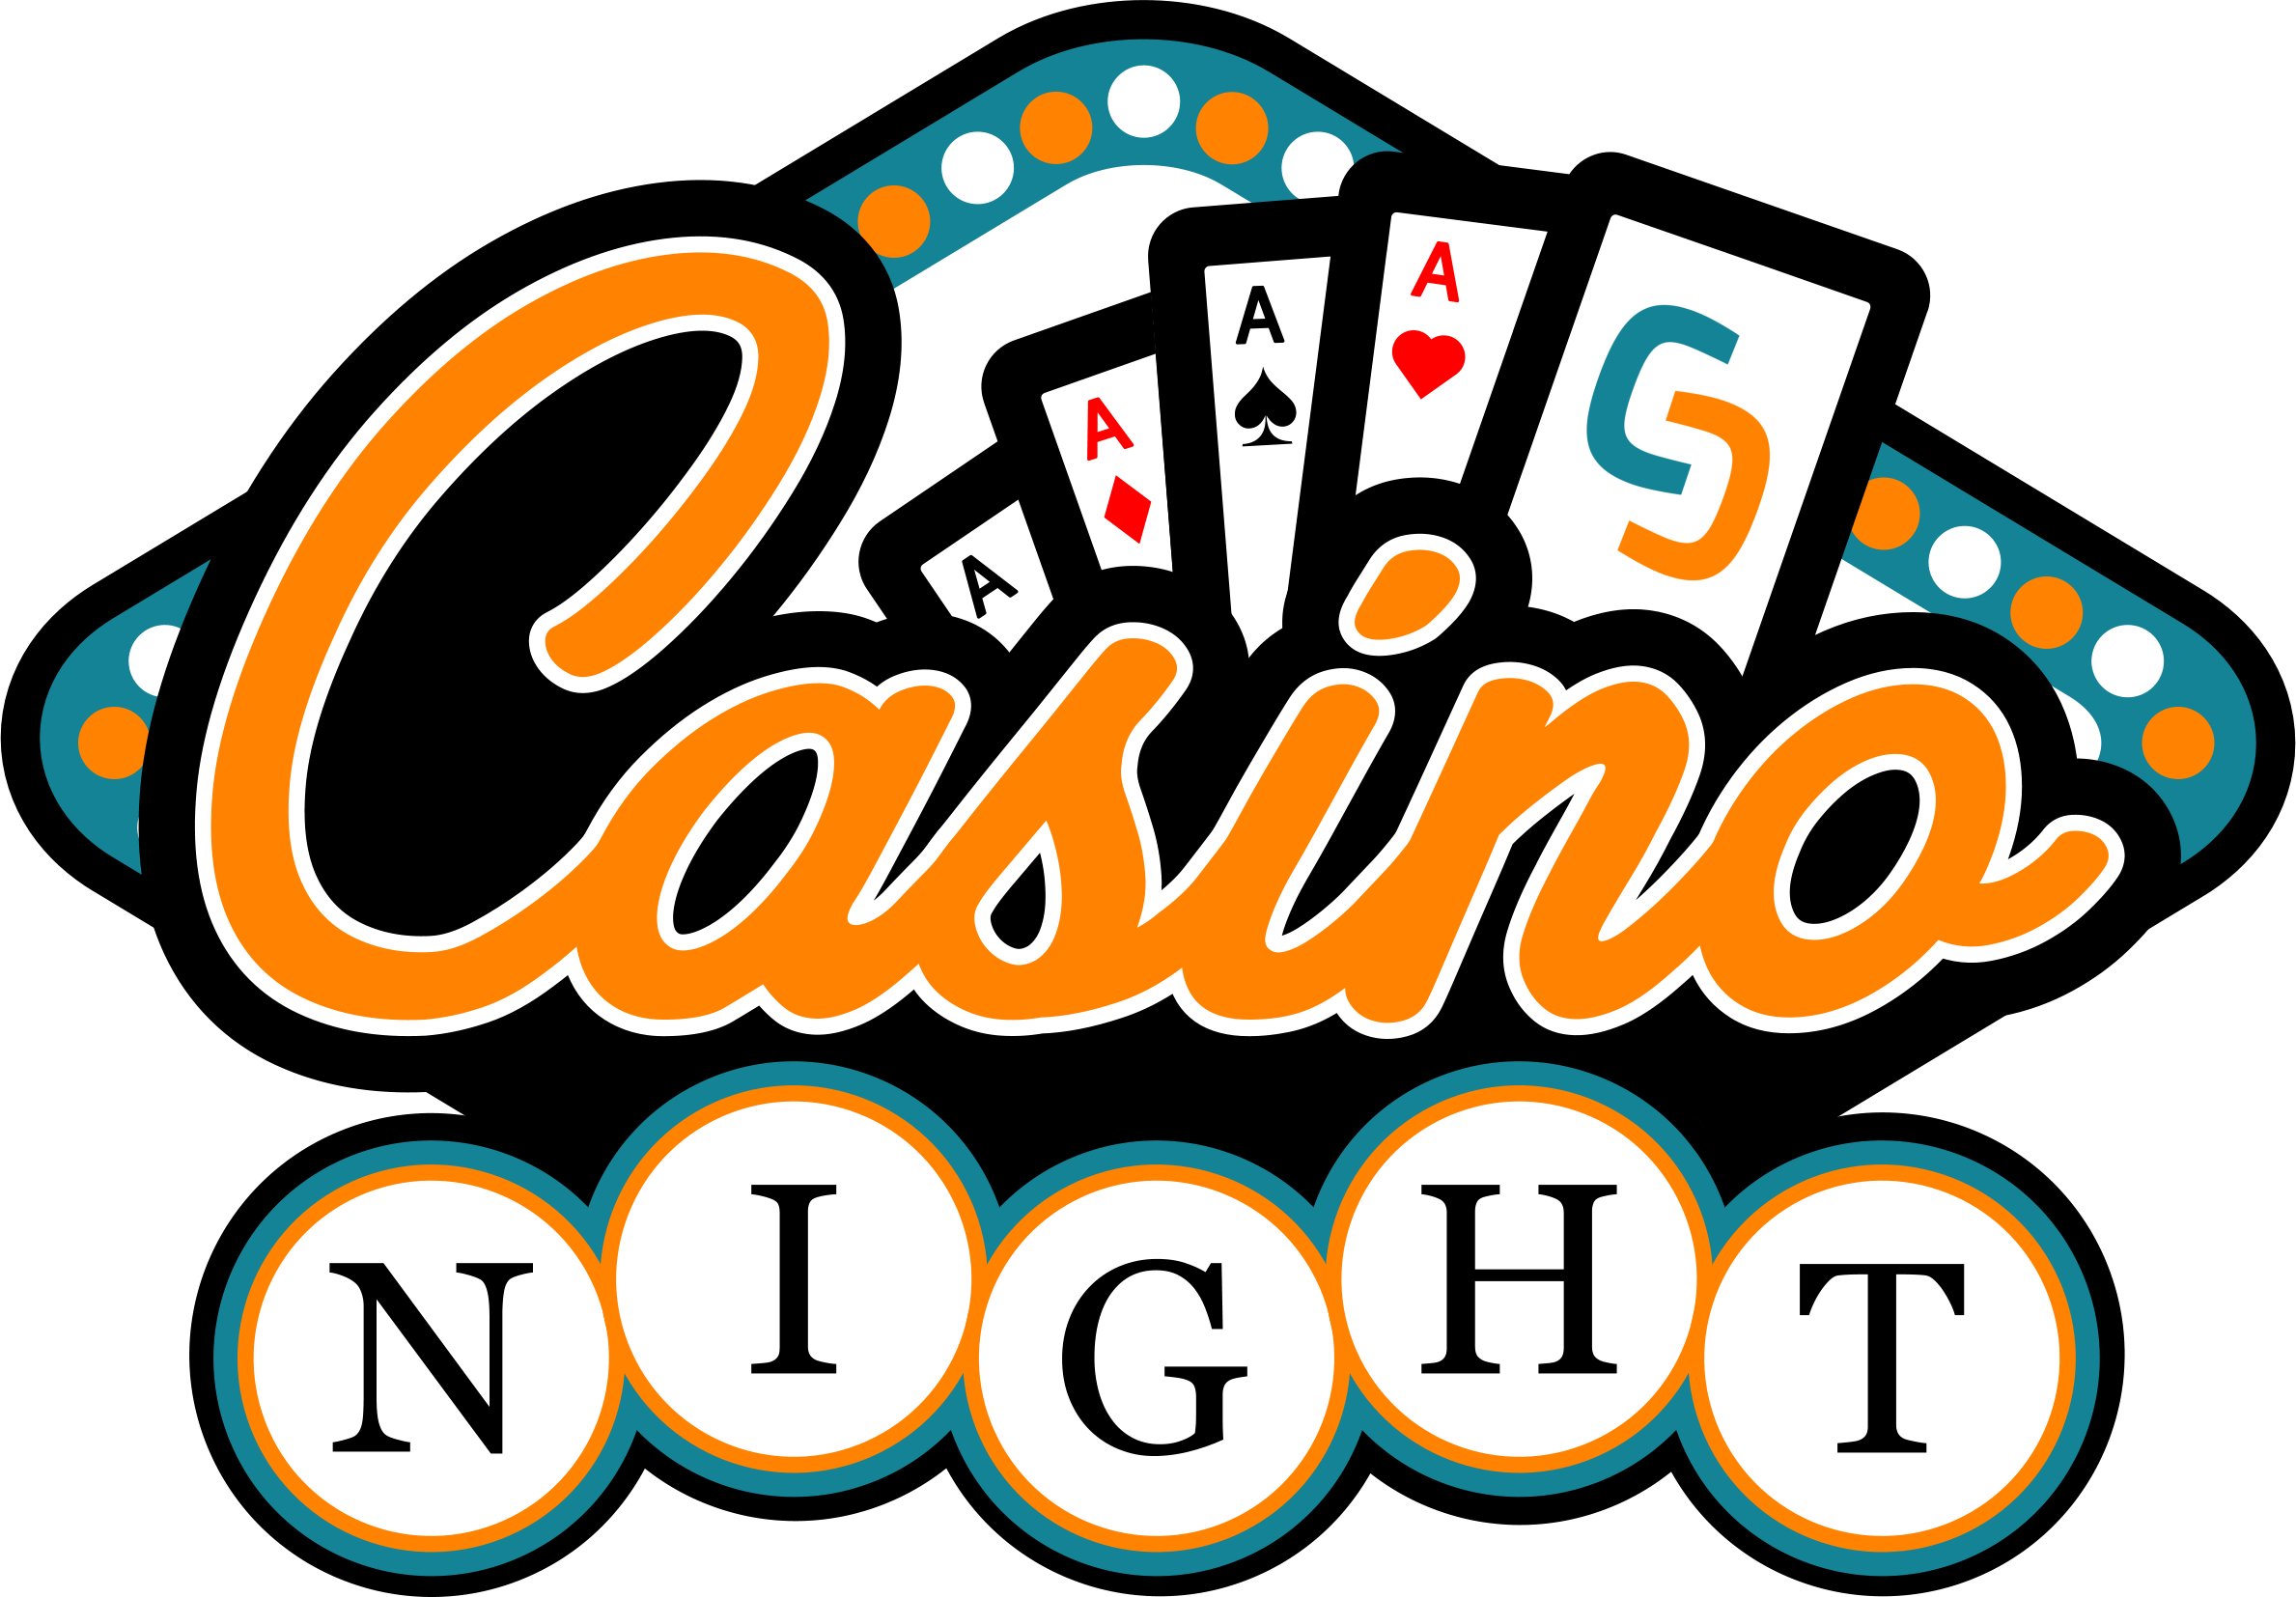 clipart library library Casino night clipart. Free cliparts download clip